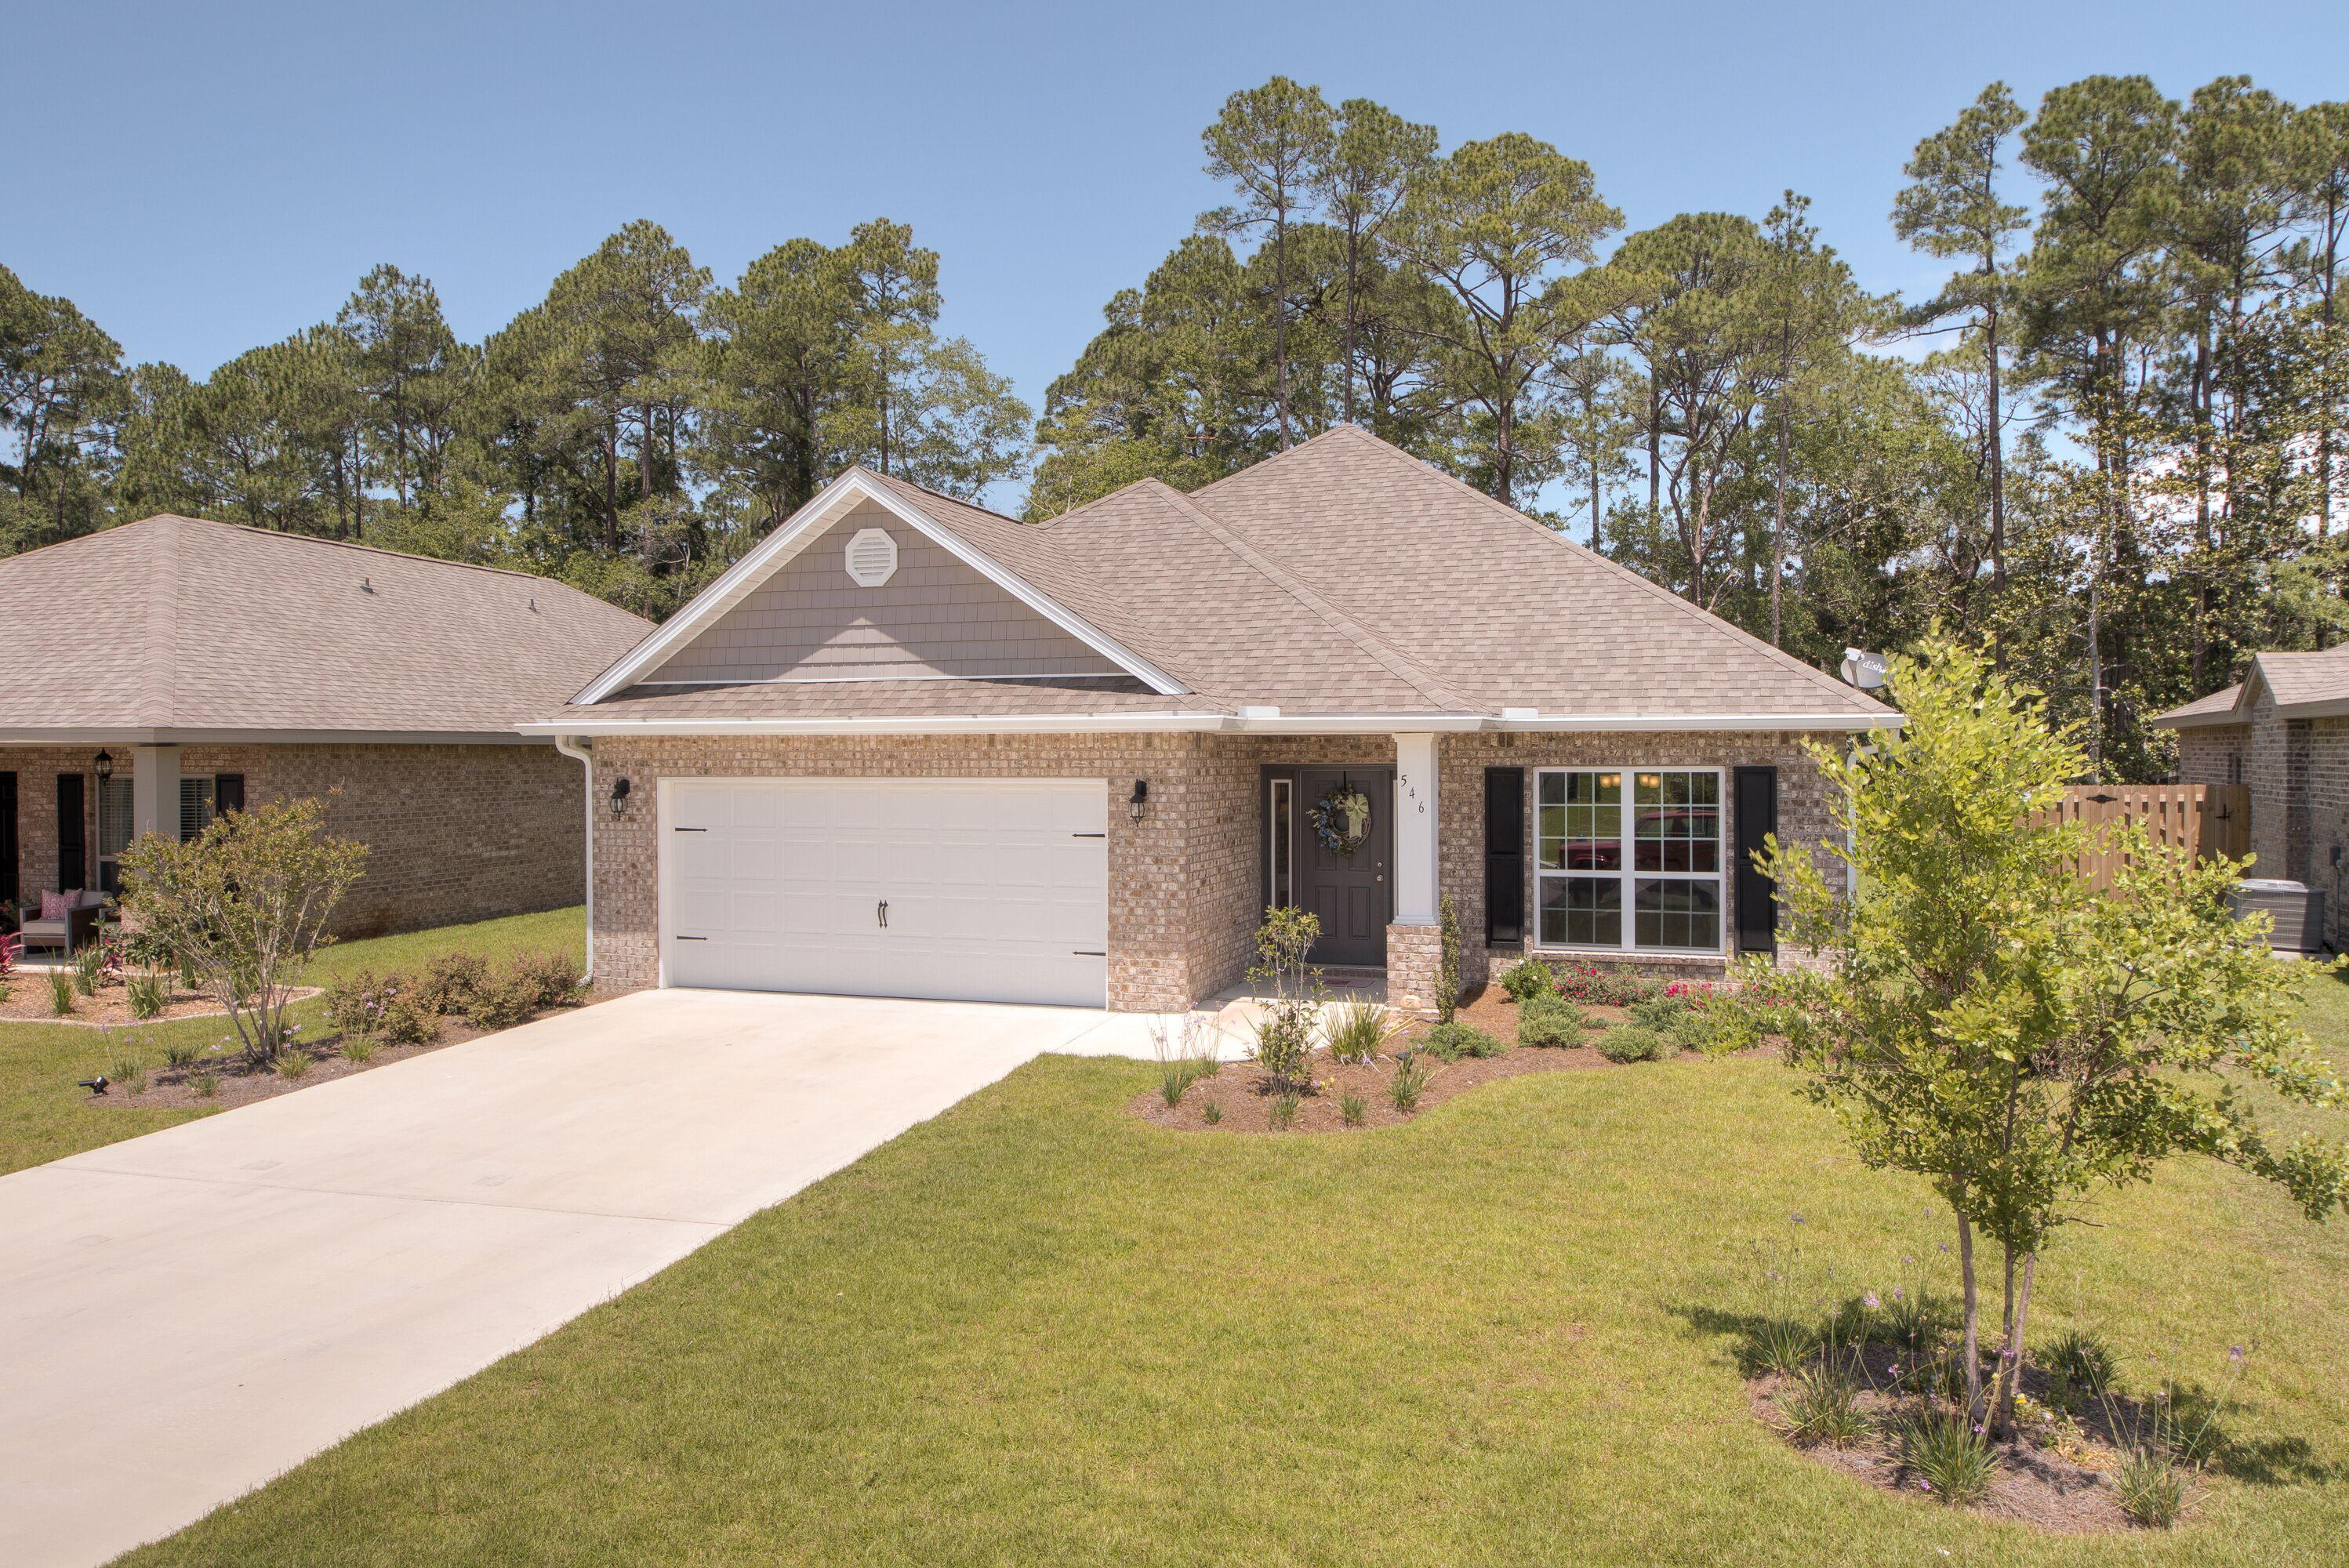 Photo of home for sale at 546 Cocobolo, Santa Rosa Beach FL